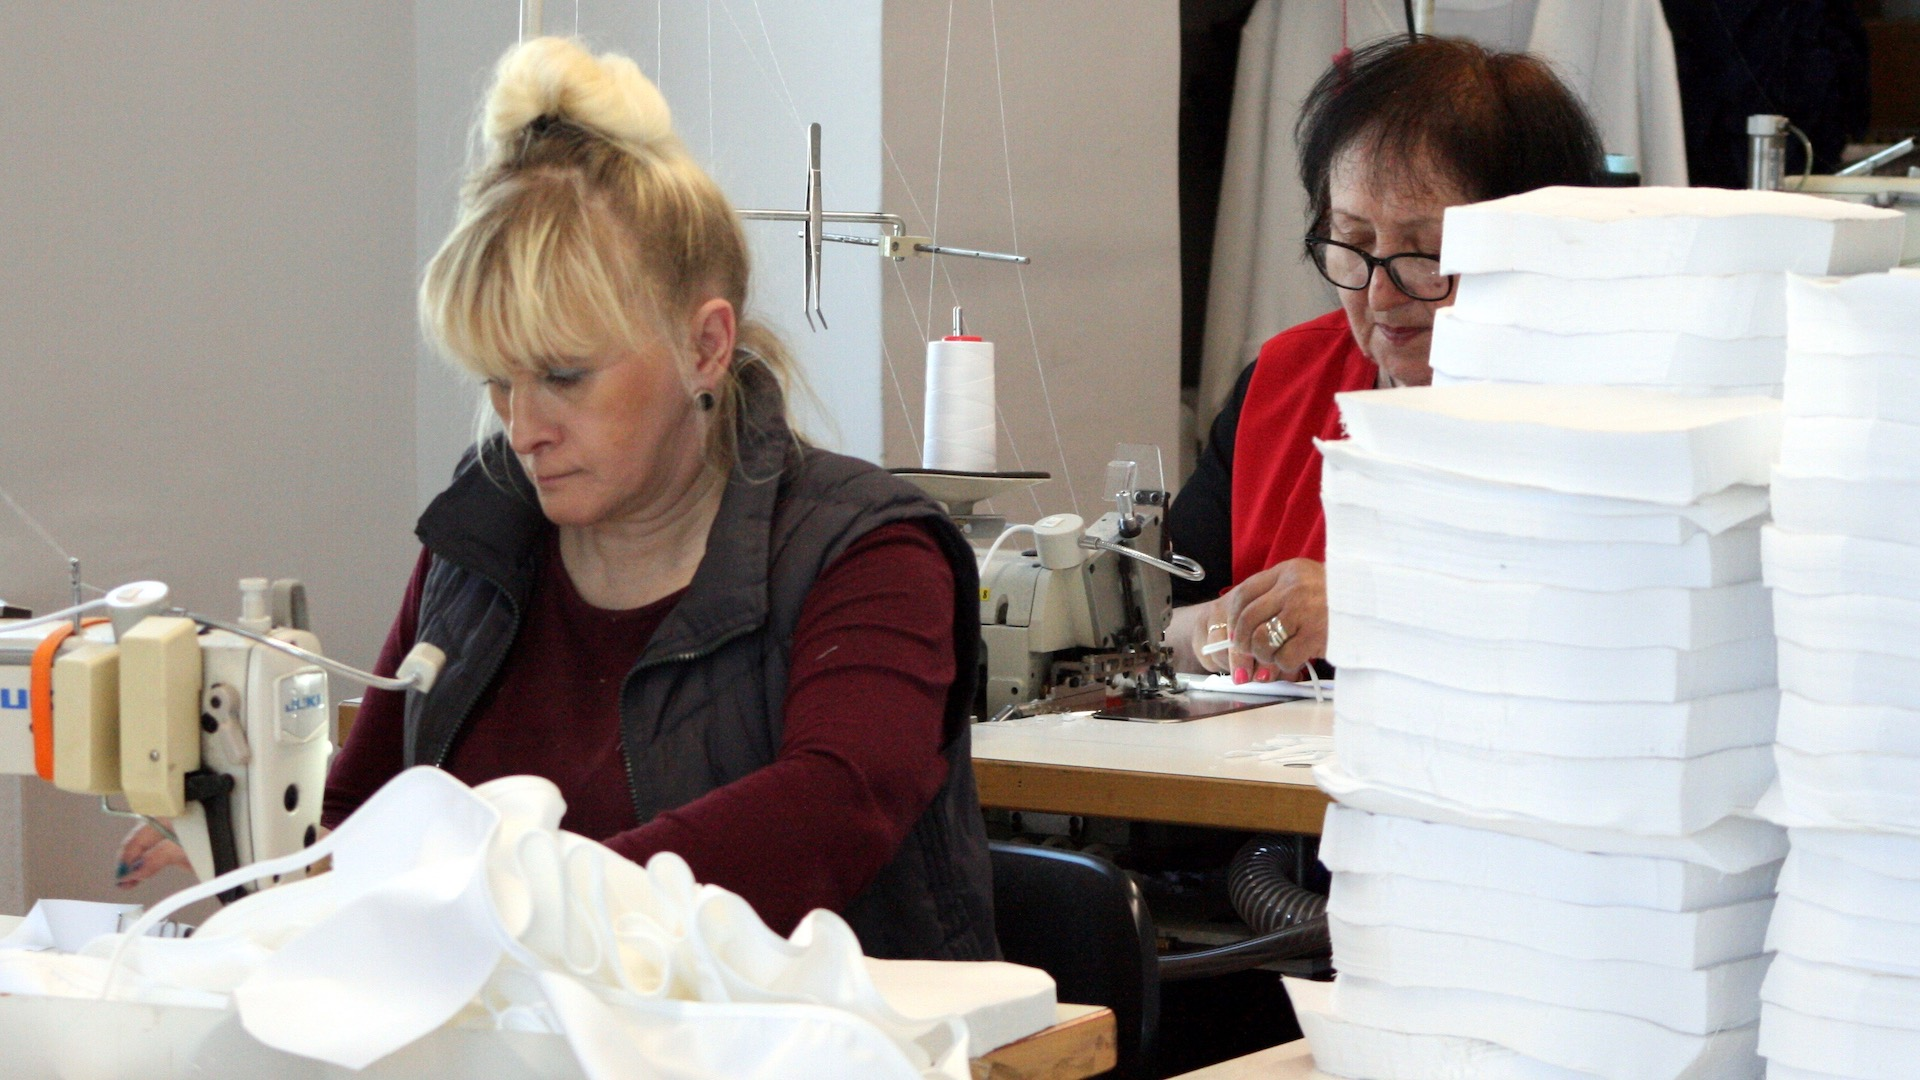 Face masks in production